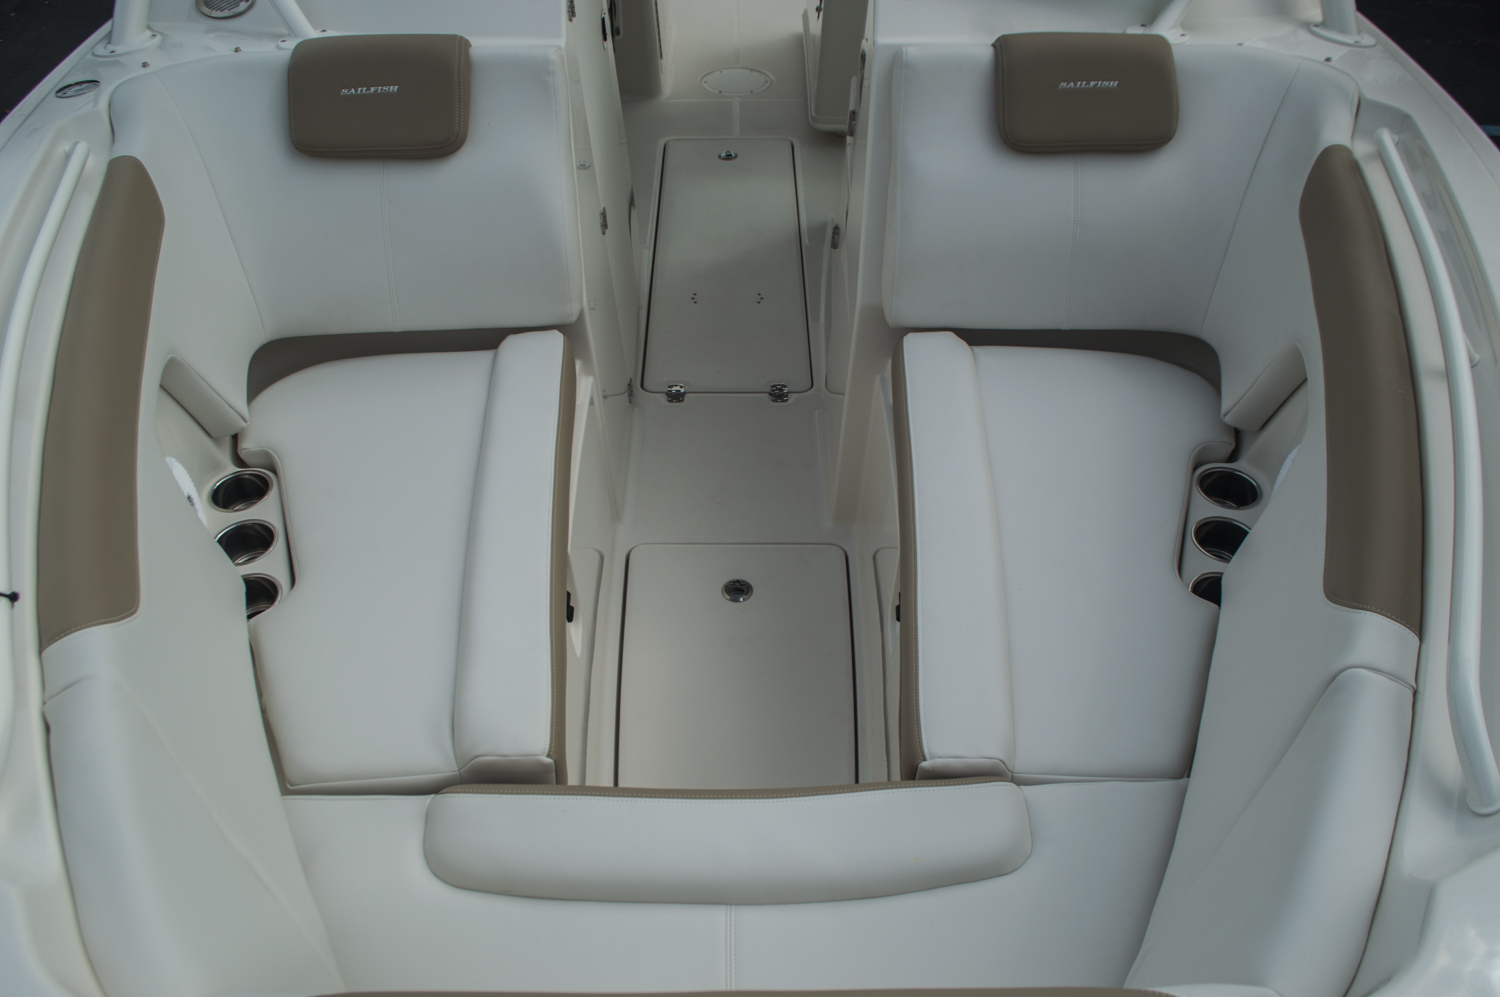 Thumbnail 18 for New 2016 Sailfish 275 Dual Console boat for sale in West Palm Beach, FL